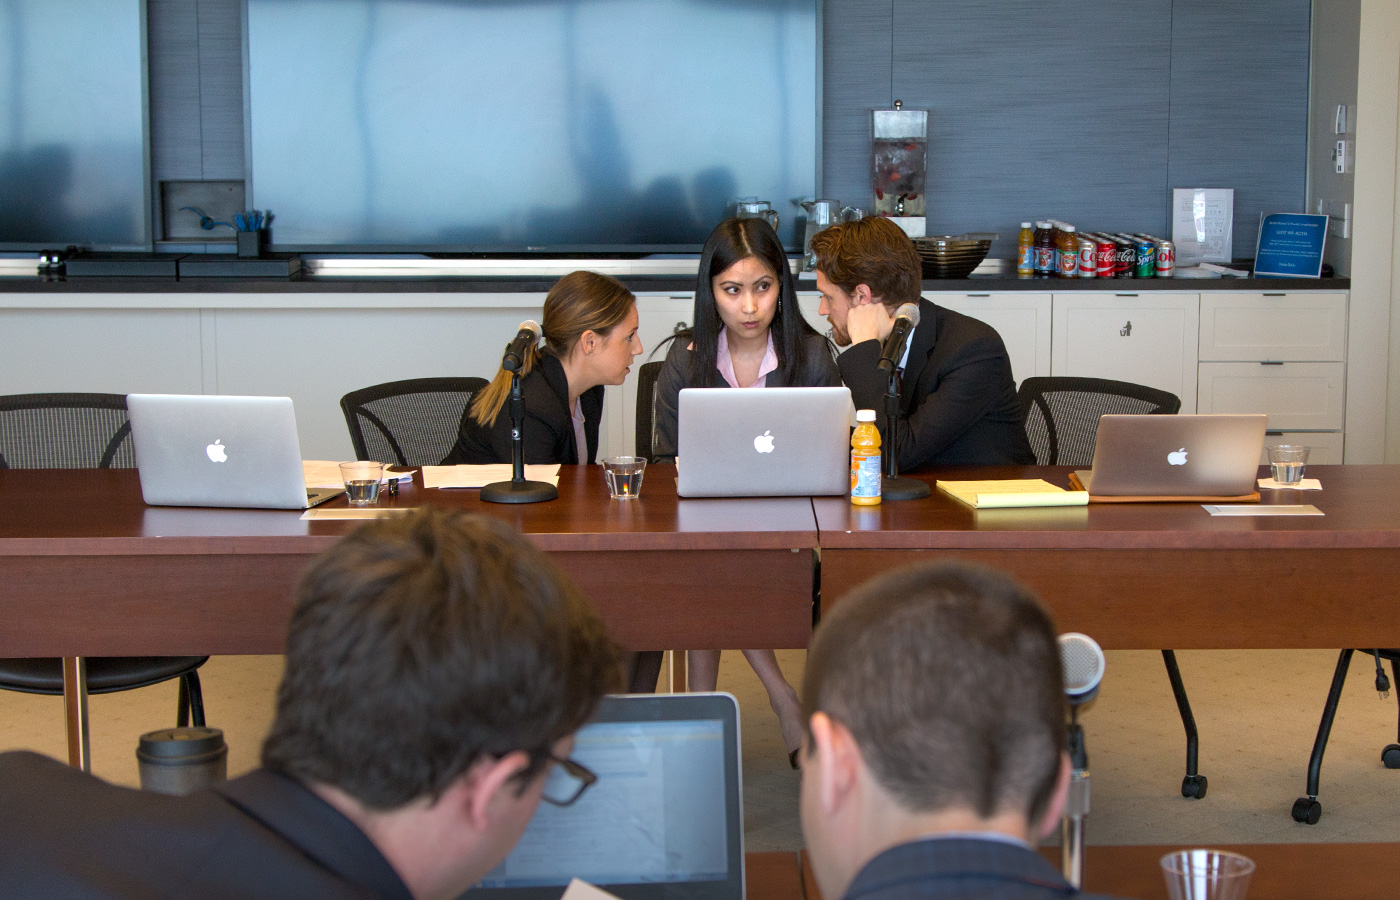 Kline law students participate in transactional Law exercise at Drinker Biddle